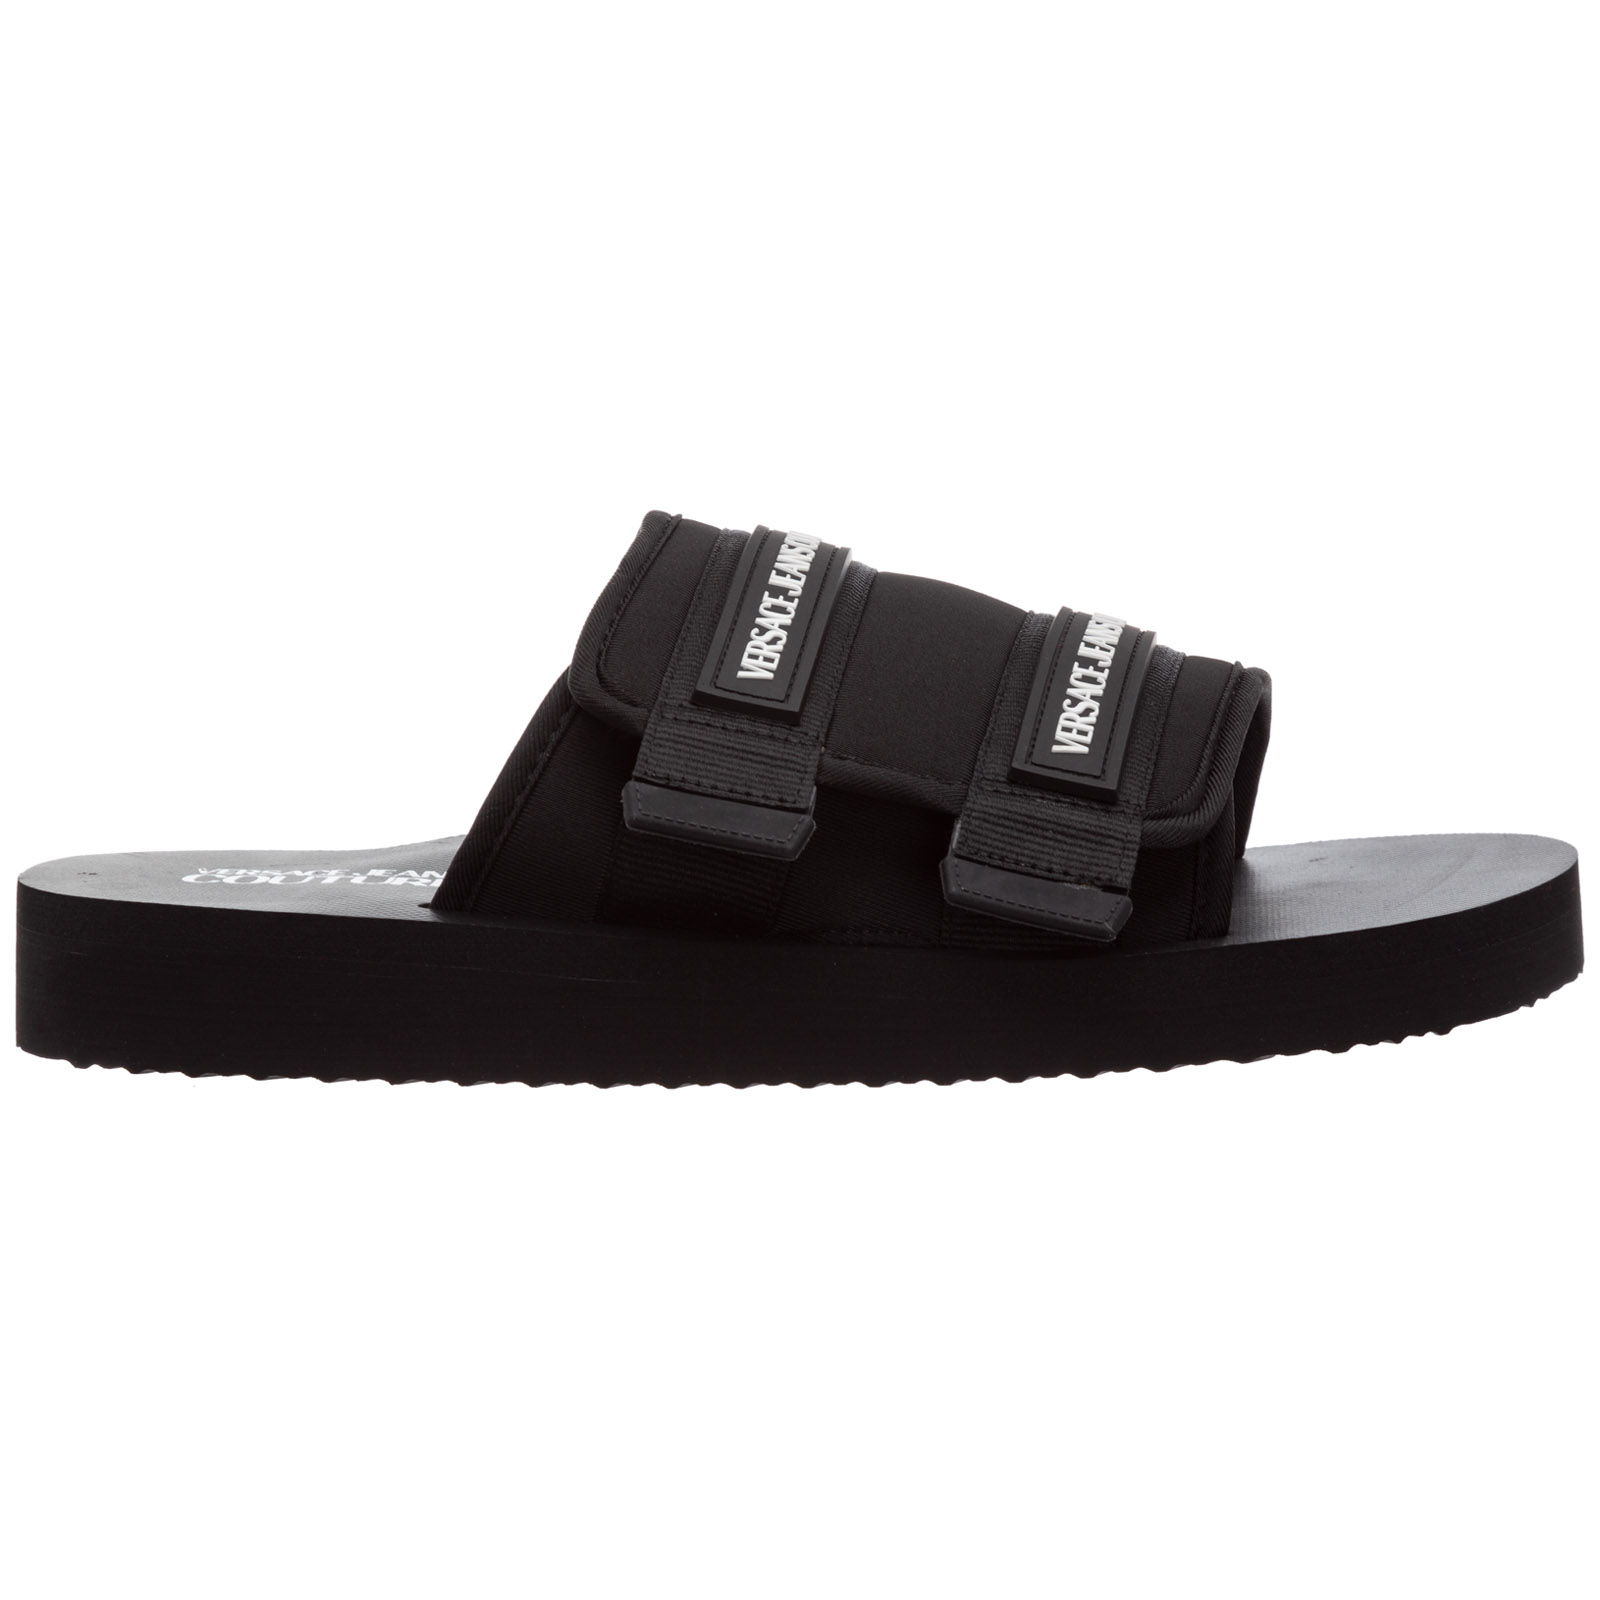 Versace Jeans Couture Slides MEN'S SLIPPERS SANDALS